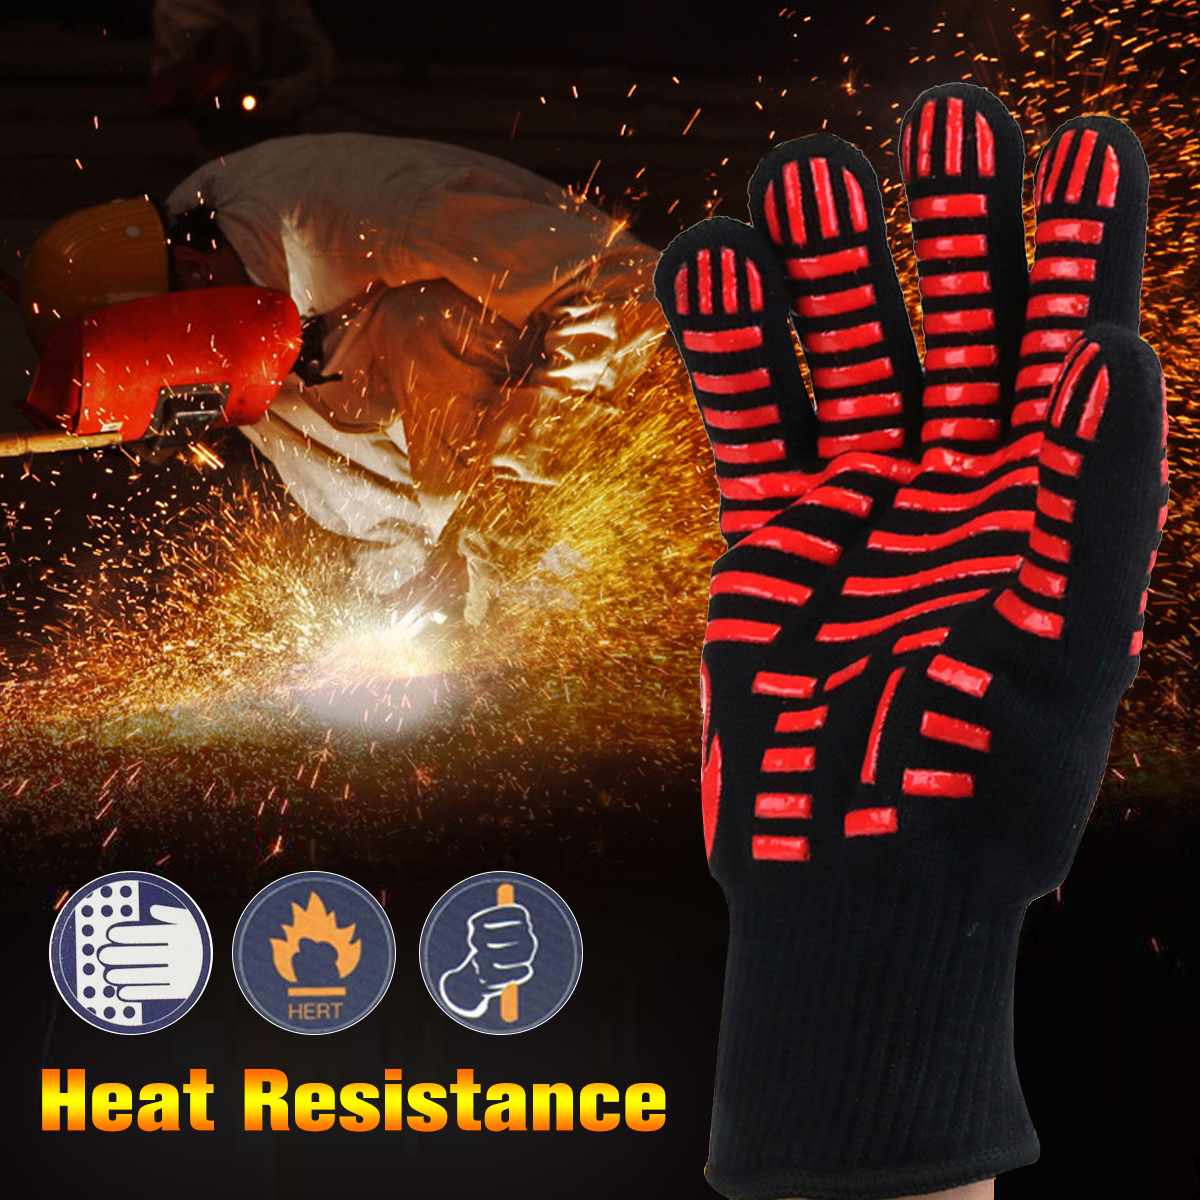 1pcs/1 Pair Fires Insulation Safety Gloves Heat Resistant Glove Aramid BBQ Glove Oven Glove Direct Supply Forearm Protection1pcs/1 Pair Fires Insulation Safety Gloves Heat Resistant Glove Aramid BBQ Glove Oven Glove Direct Supply Forearm Protection